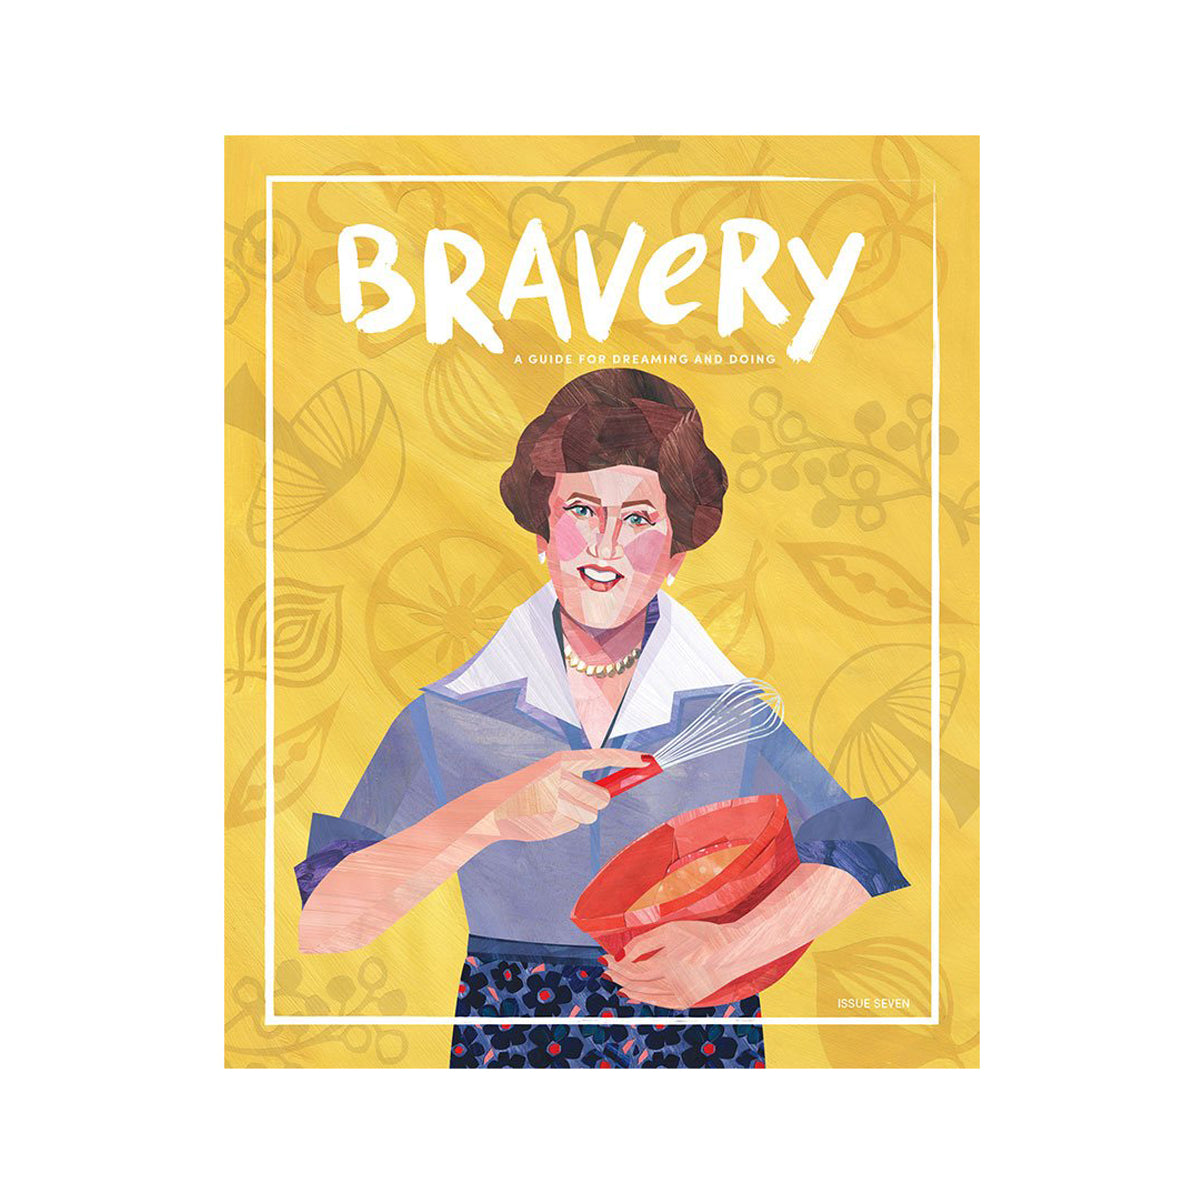 Bravery Magazine issue 7 / Julia Child